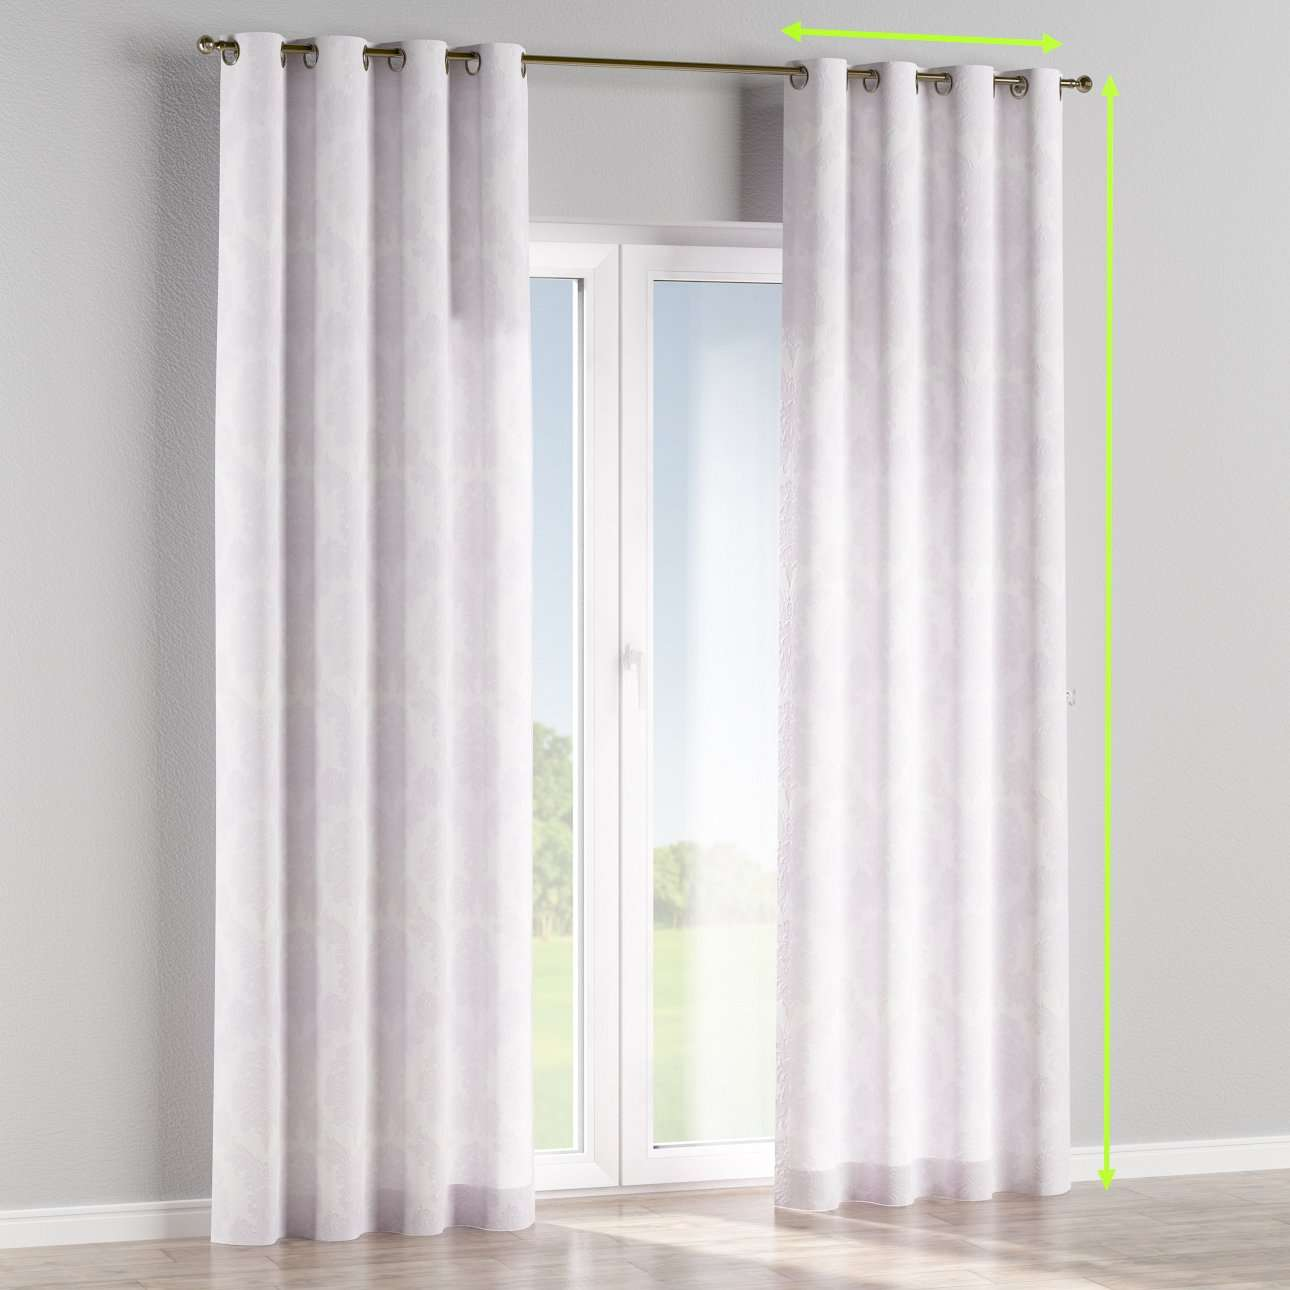 Eyelet curtains in collection Damasco, fabric: 613-00